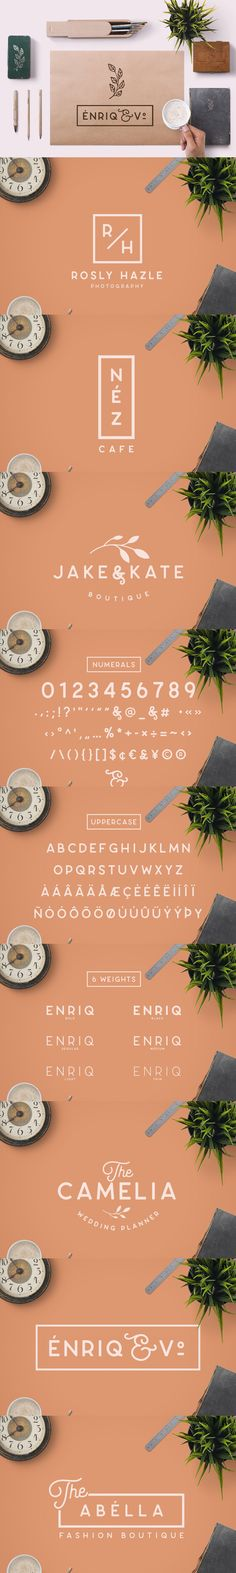 Enriq Round Sans (All Caps Version) is an Elegant Sans serif typeface with smooth rounded edge style, Fashionable, Classy but still Modern. Elegant Fonts, Sans Serif Typeface, Glyphs, Editorial Design, Ninja, Photoshop, Graphic Design, Style, Classy Fonts